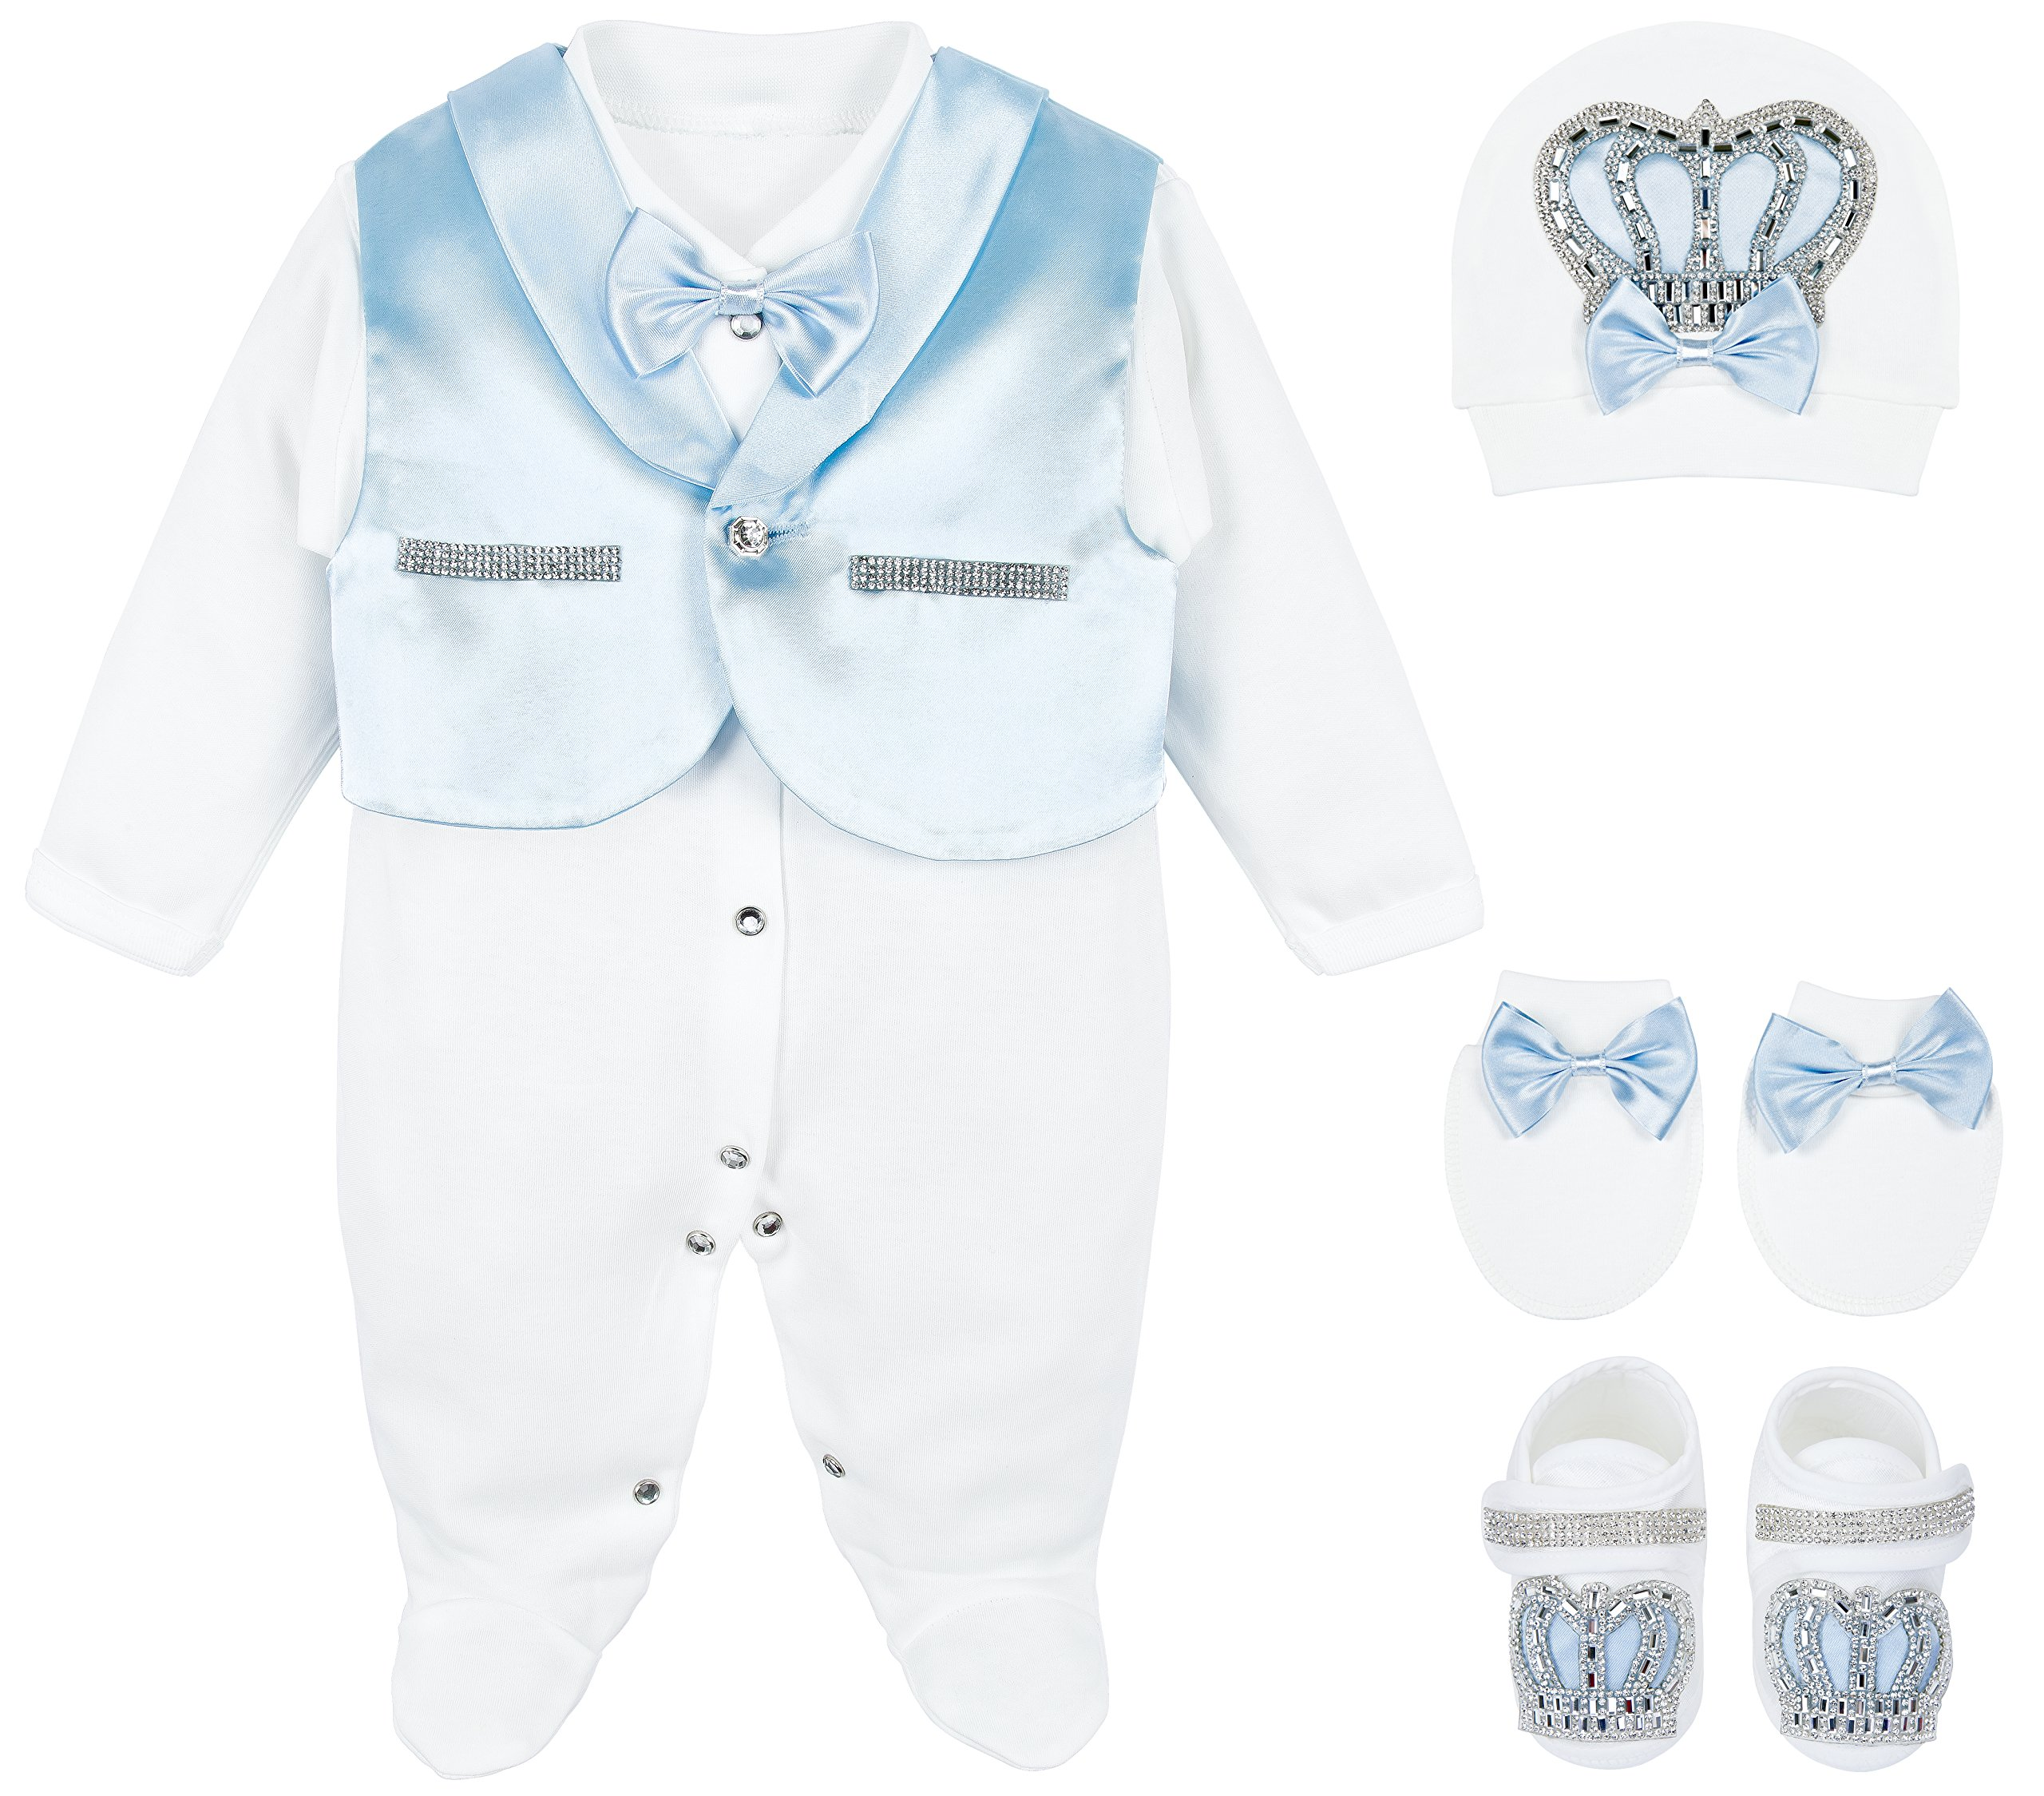 Lilax Baby Boy Jewels Crown Tuxedo Outfit Layette 5 Piece